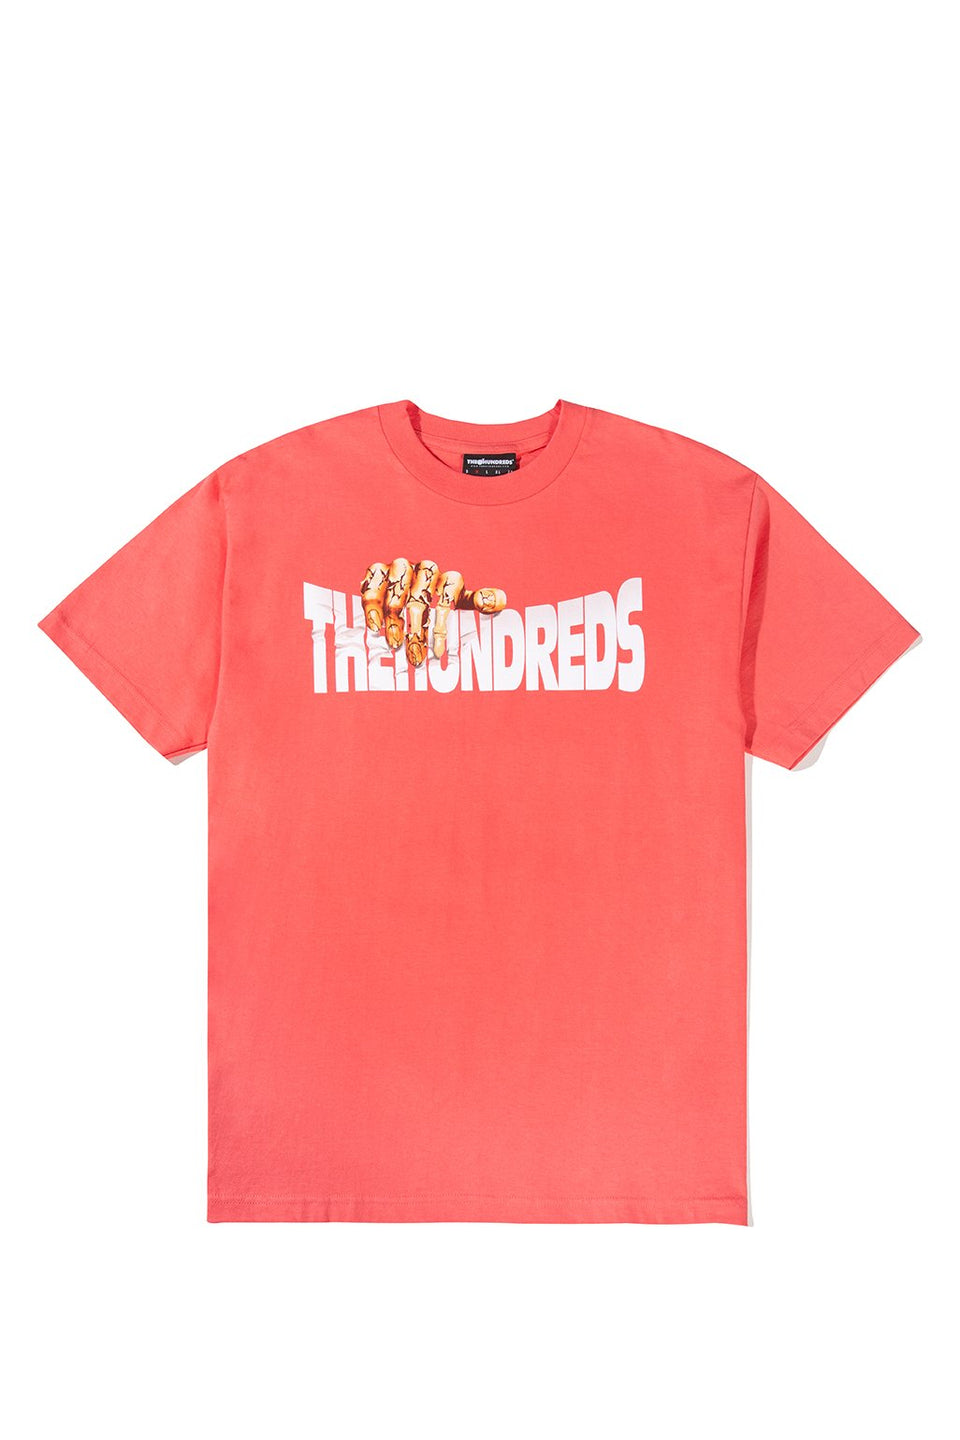 The Hundreds Dead T-Shirt TOPS Coral